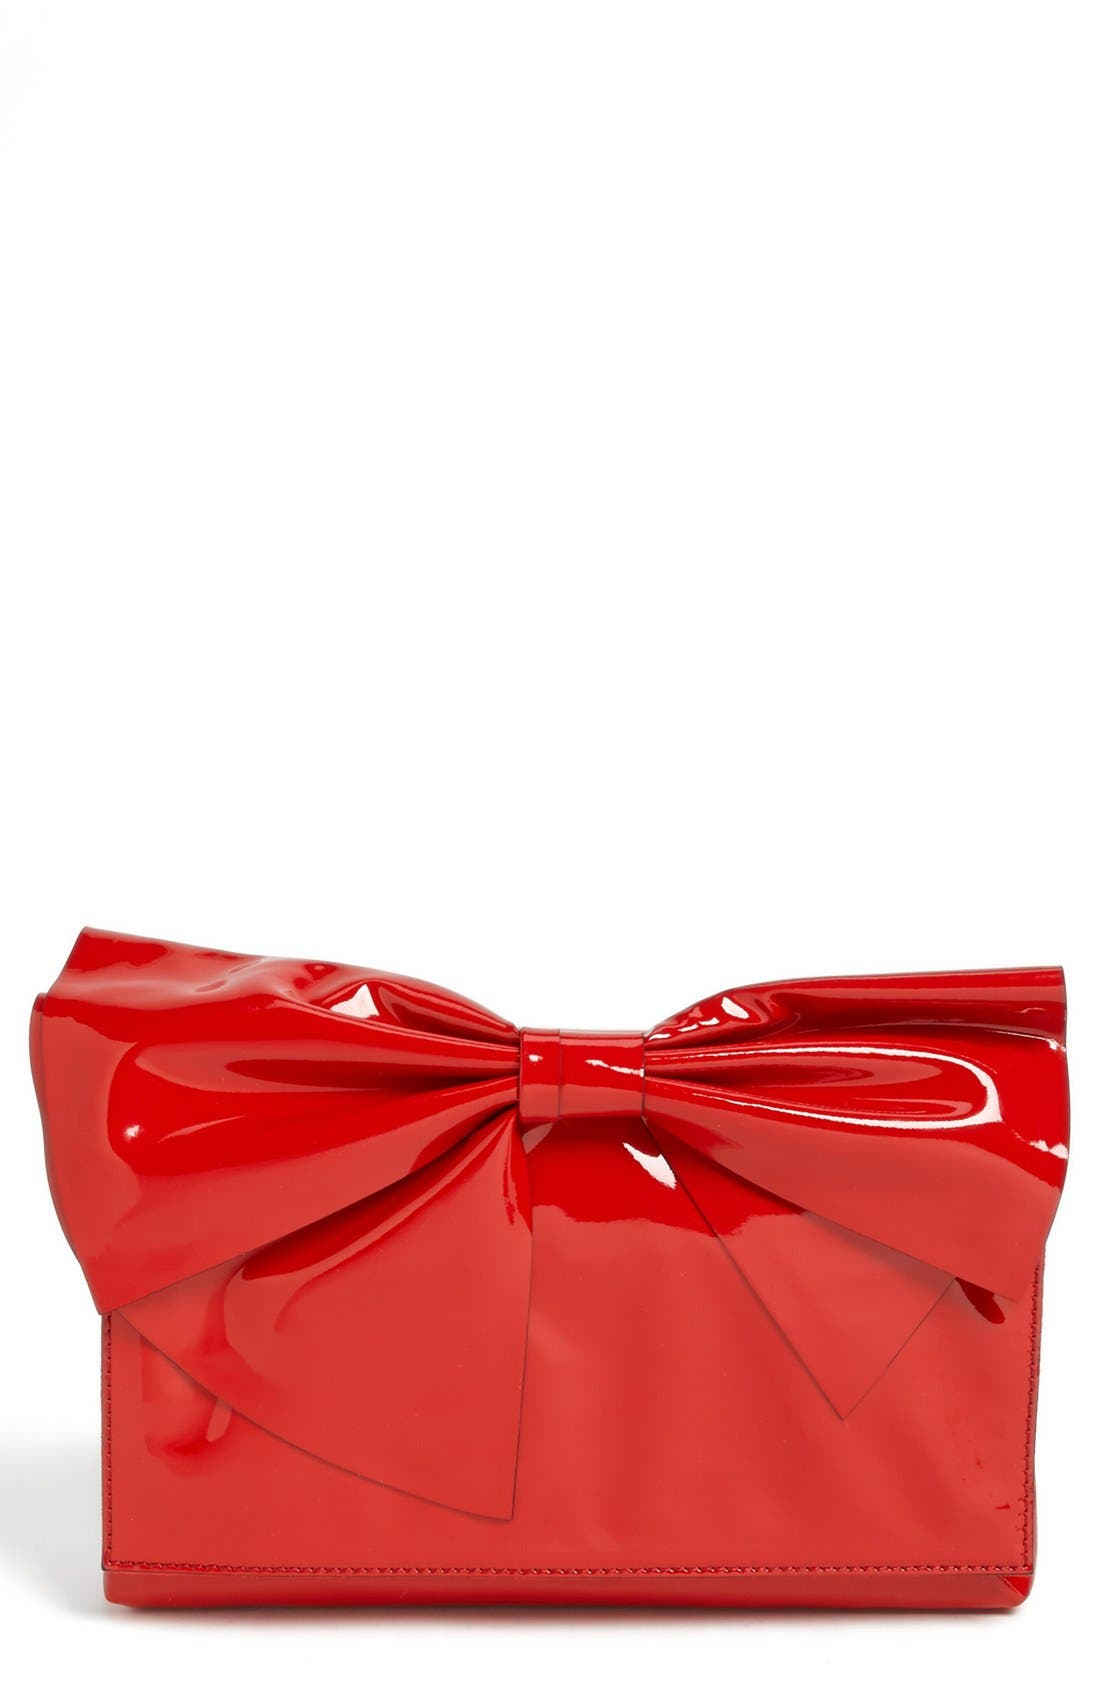 Alternate Image 1 Selected - Valentino 'Lacca Bow' Flap Clutch